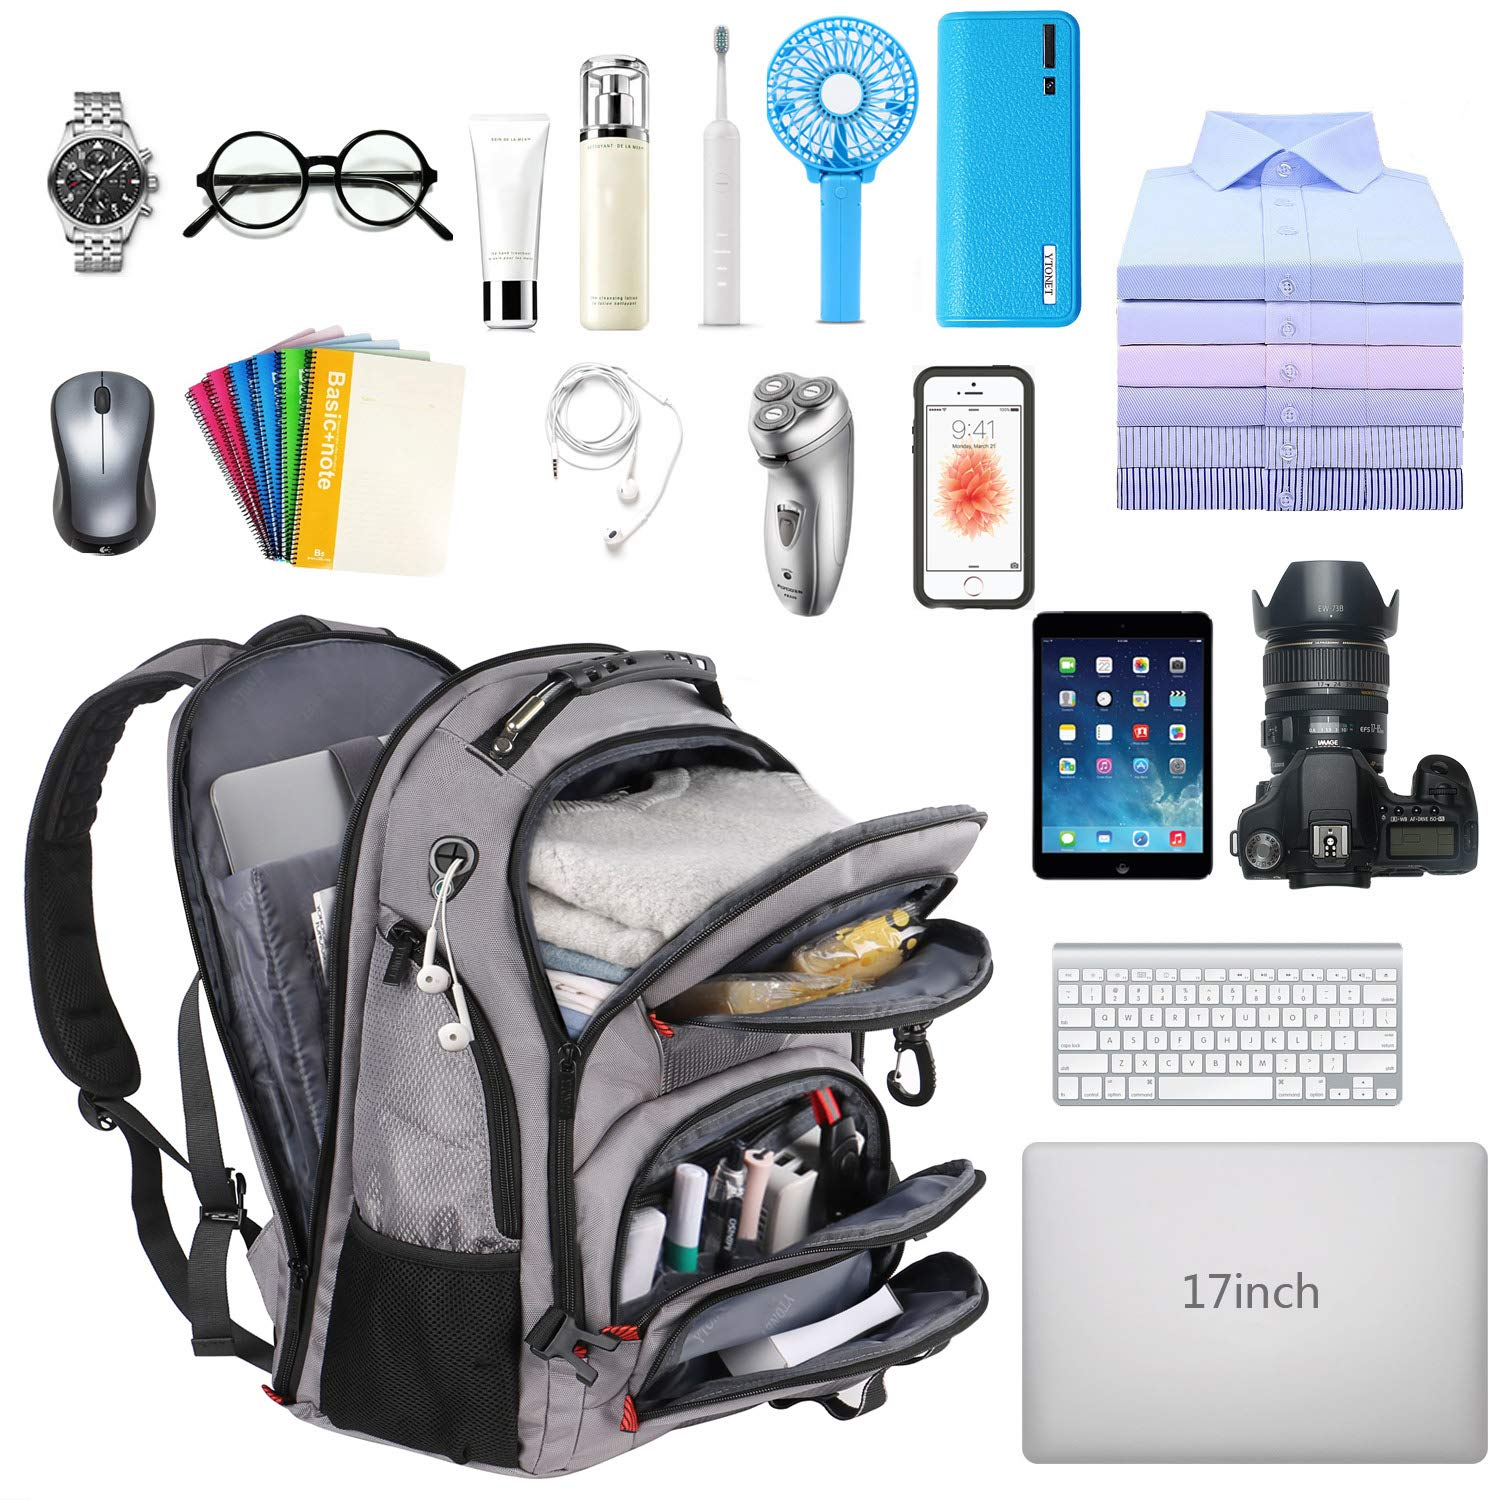 Amazon.com: Laptop Backpack for Men, Extra Large Backpack with TSA Friendly & USB Charging Port for Travel Hiking School College, Big Anti-Theft Daypack ...